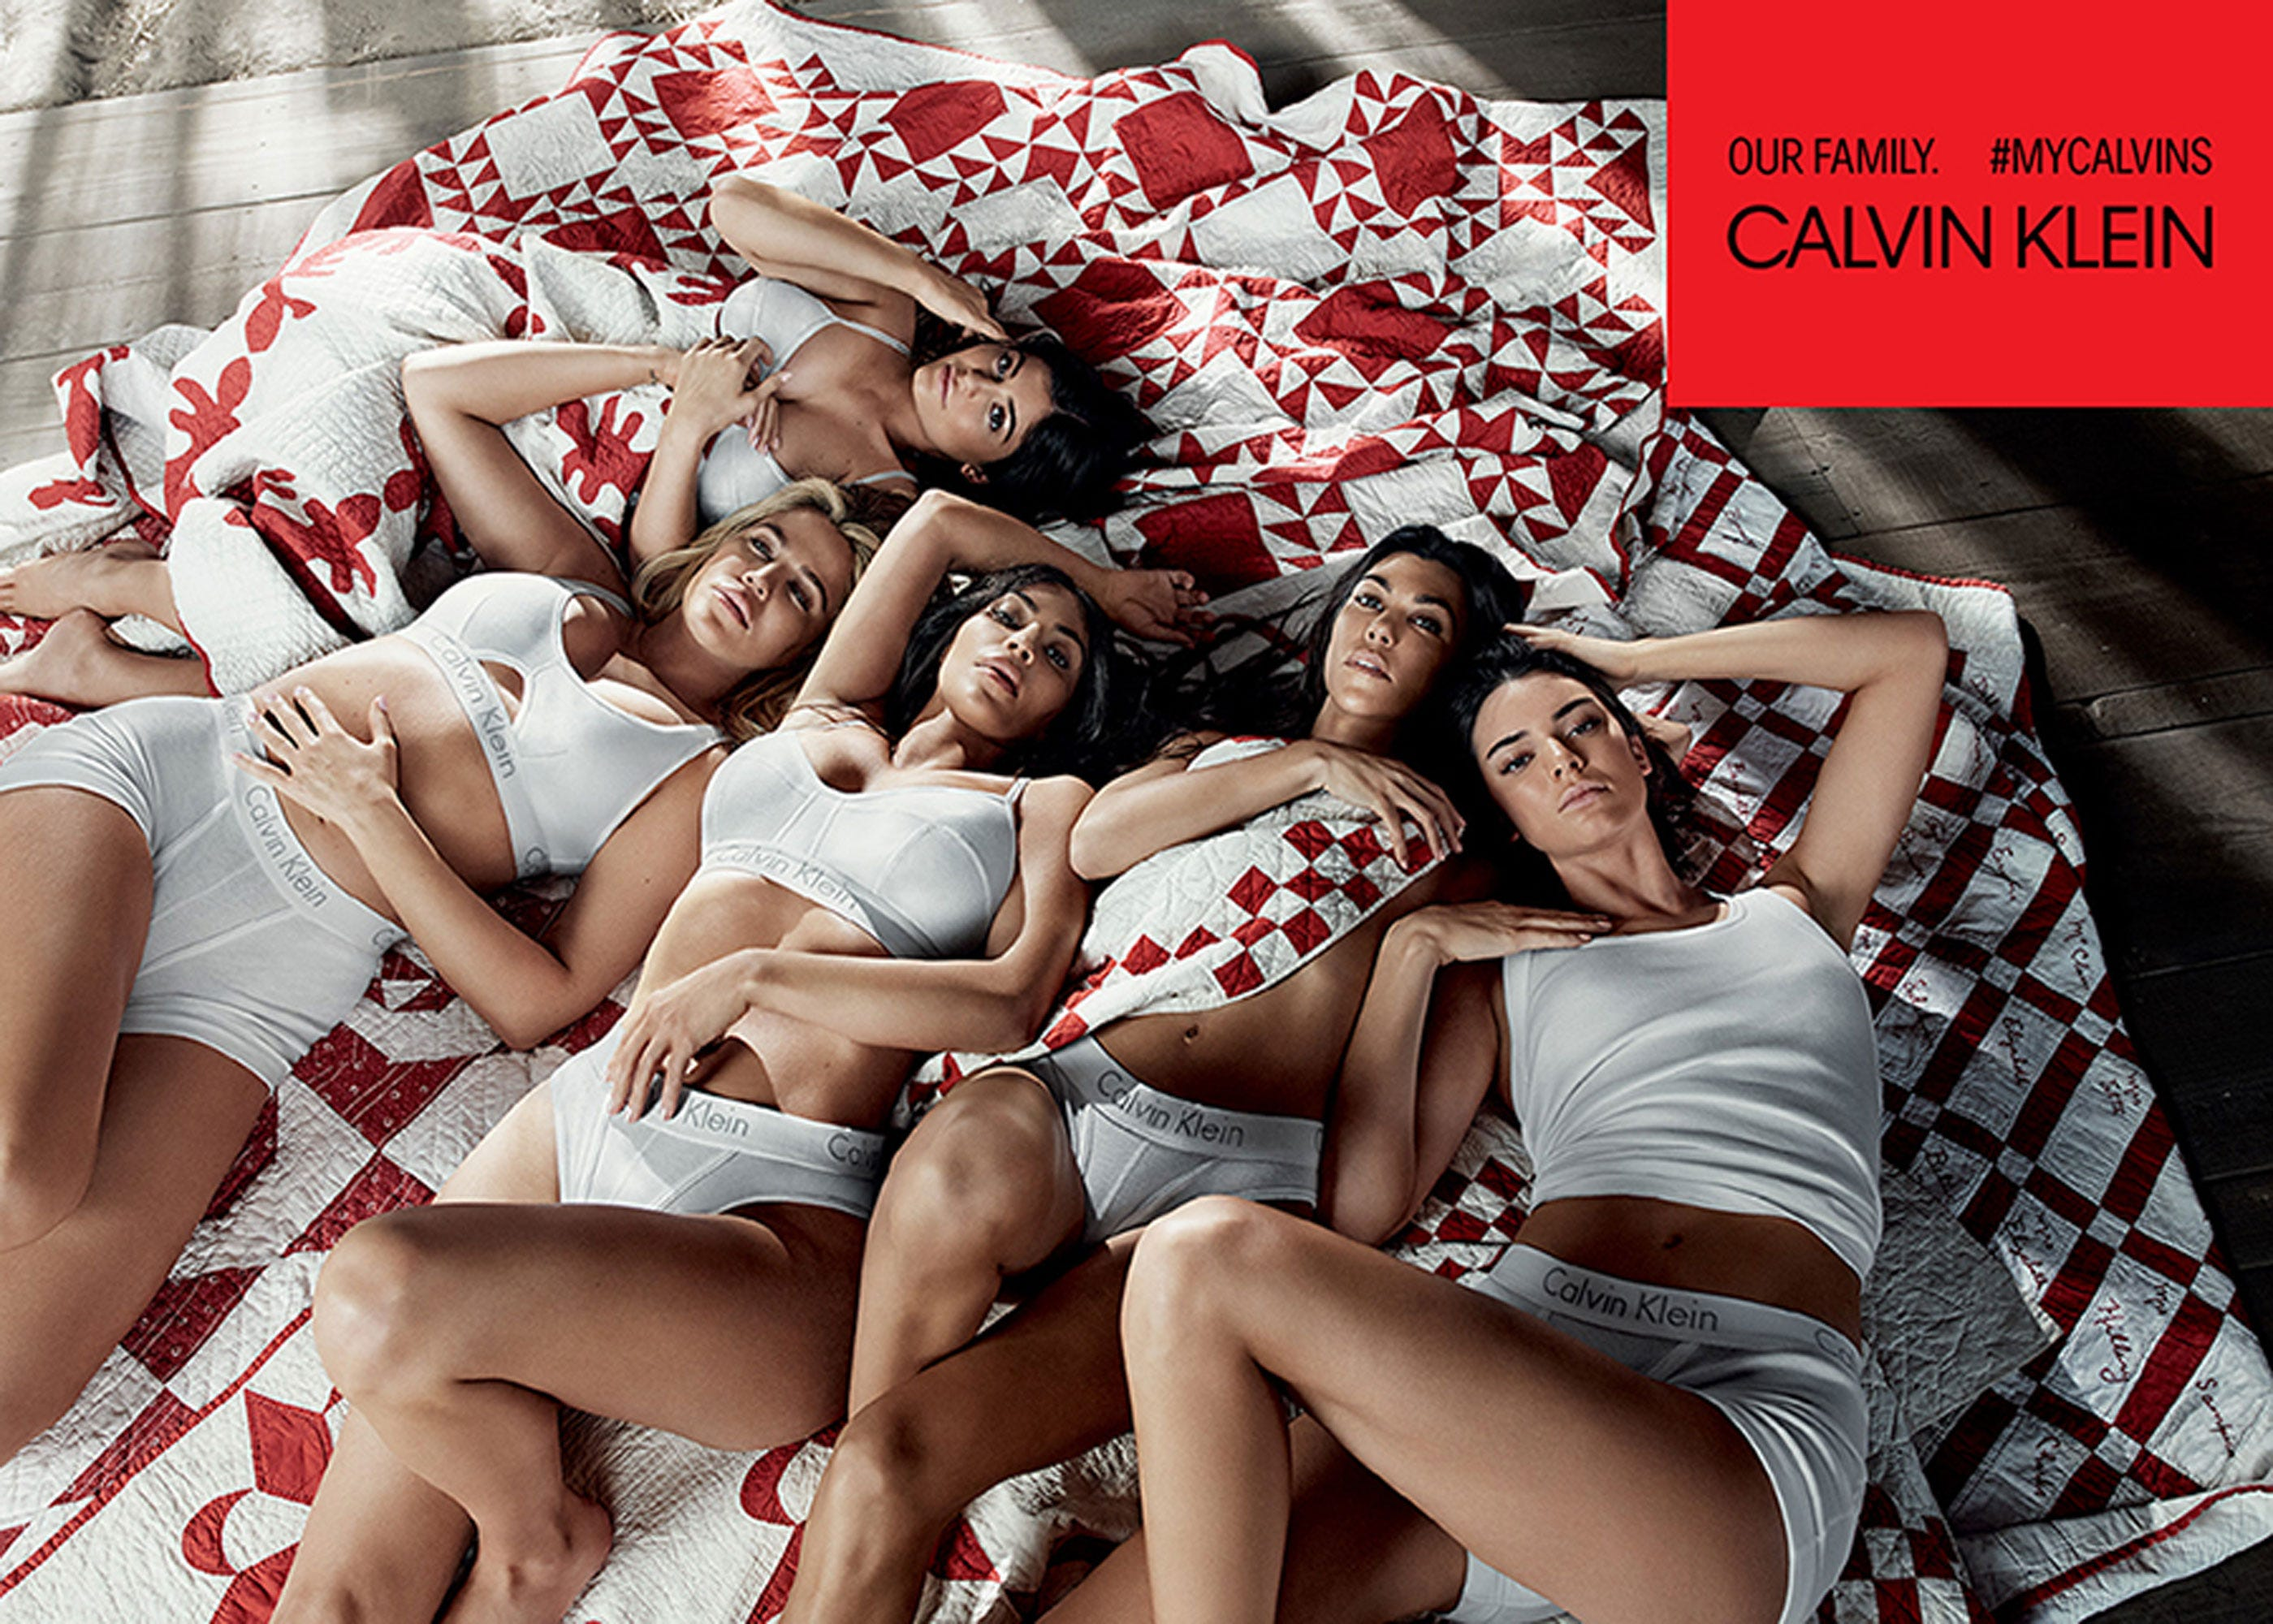 latest #mycalvins ad causes controversy